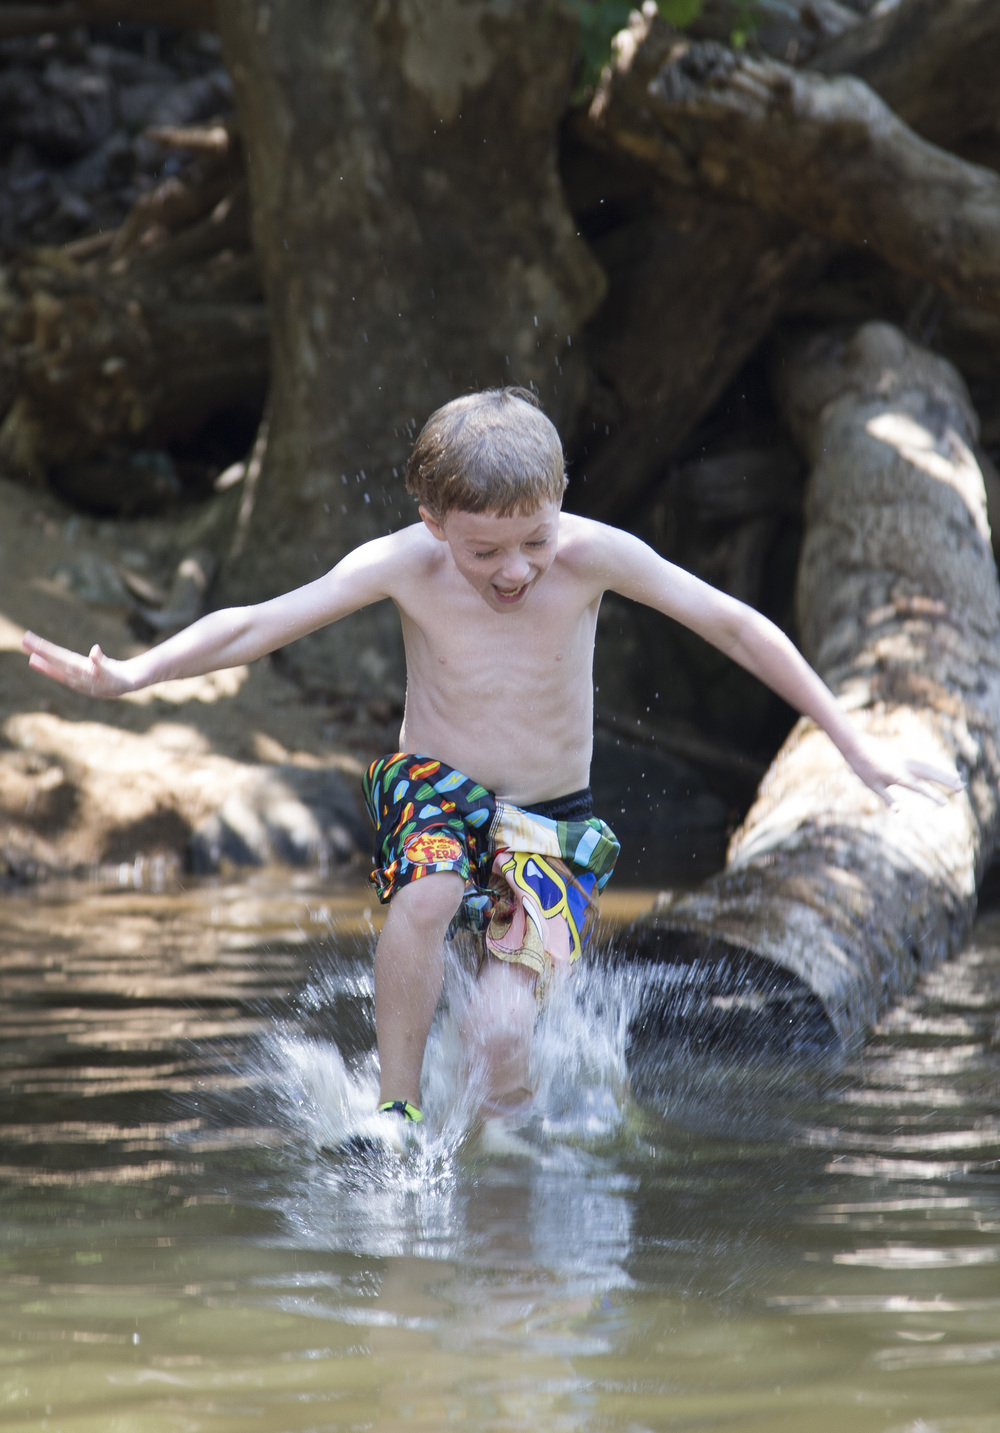 Zane Cornwright, 7, of Durham, jumps into the Eno River in Durham during the Festival for the Eno on Friday, July 4, 2014.